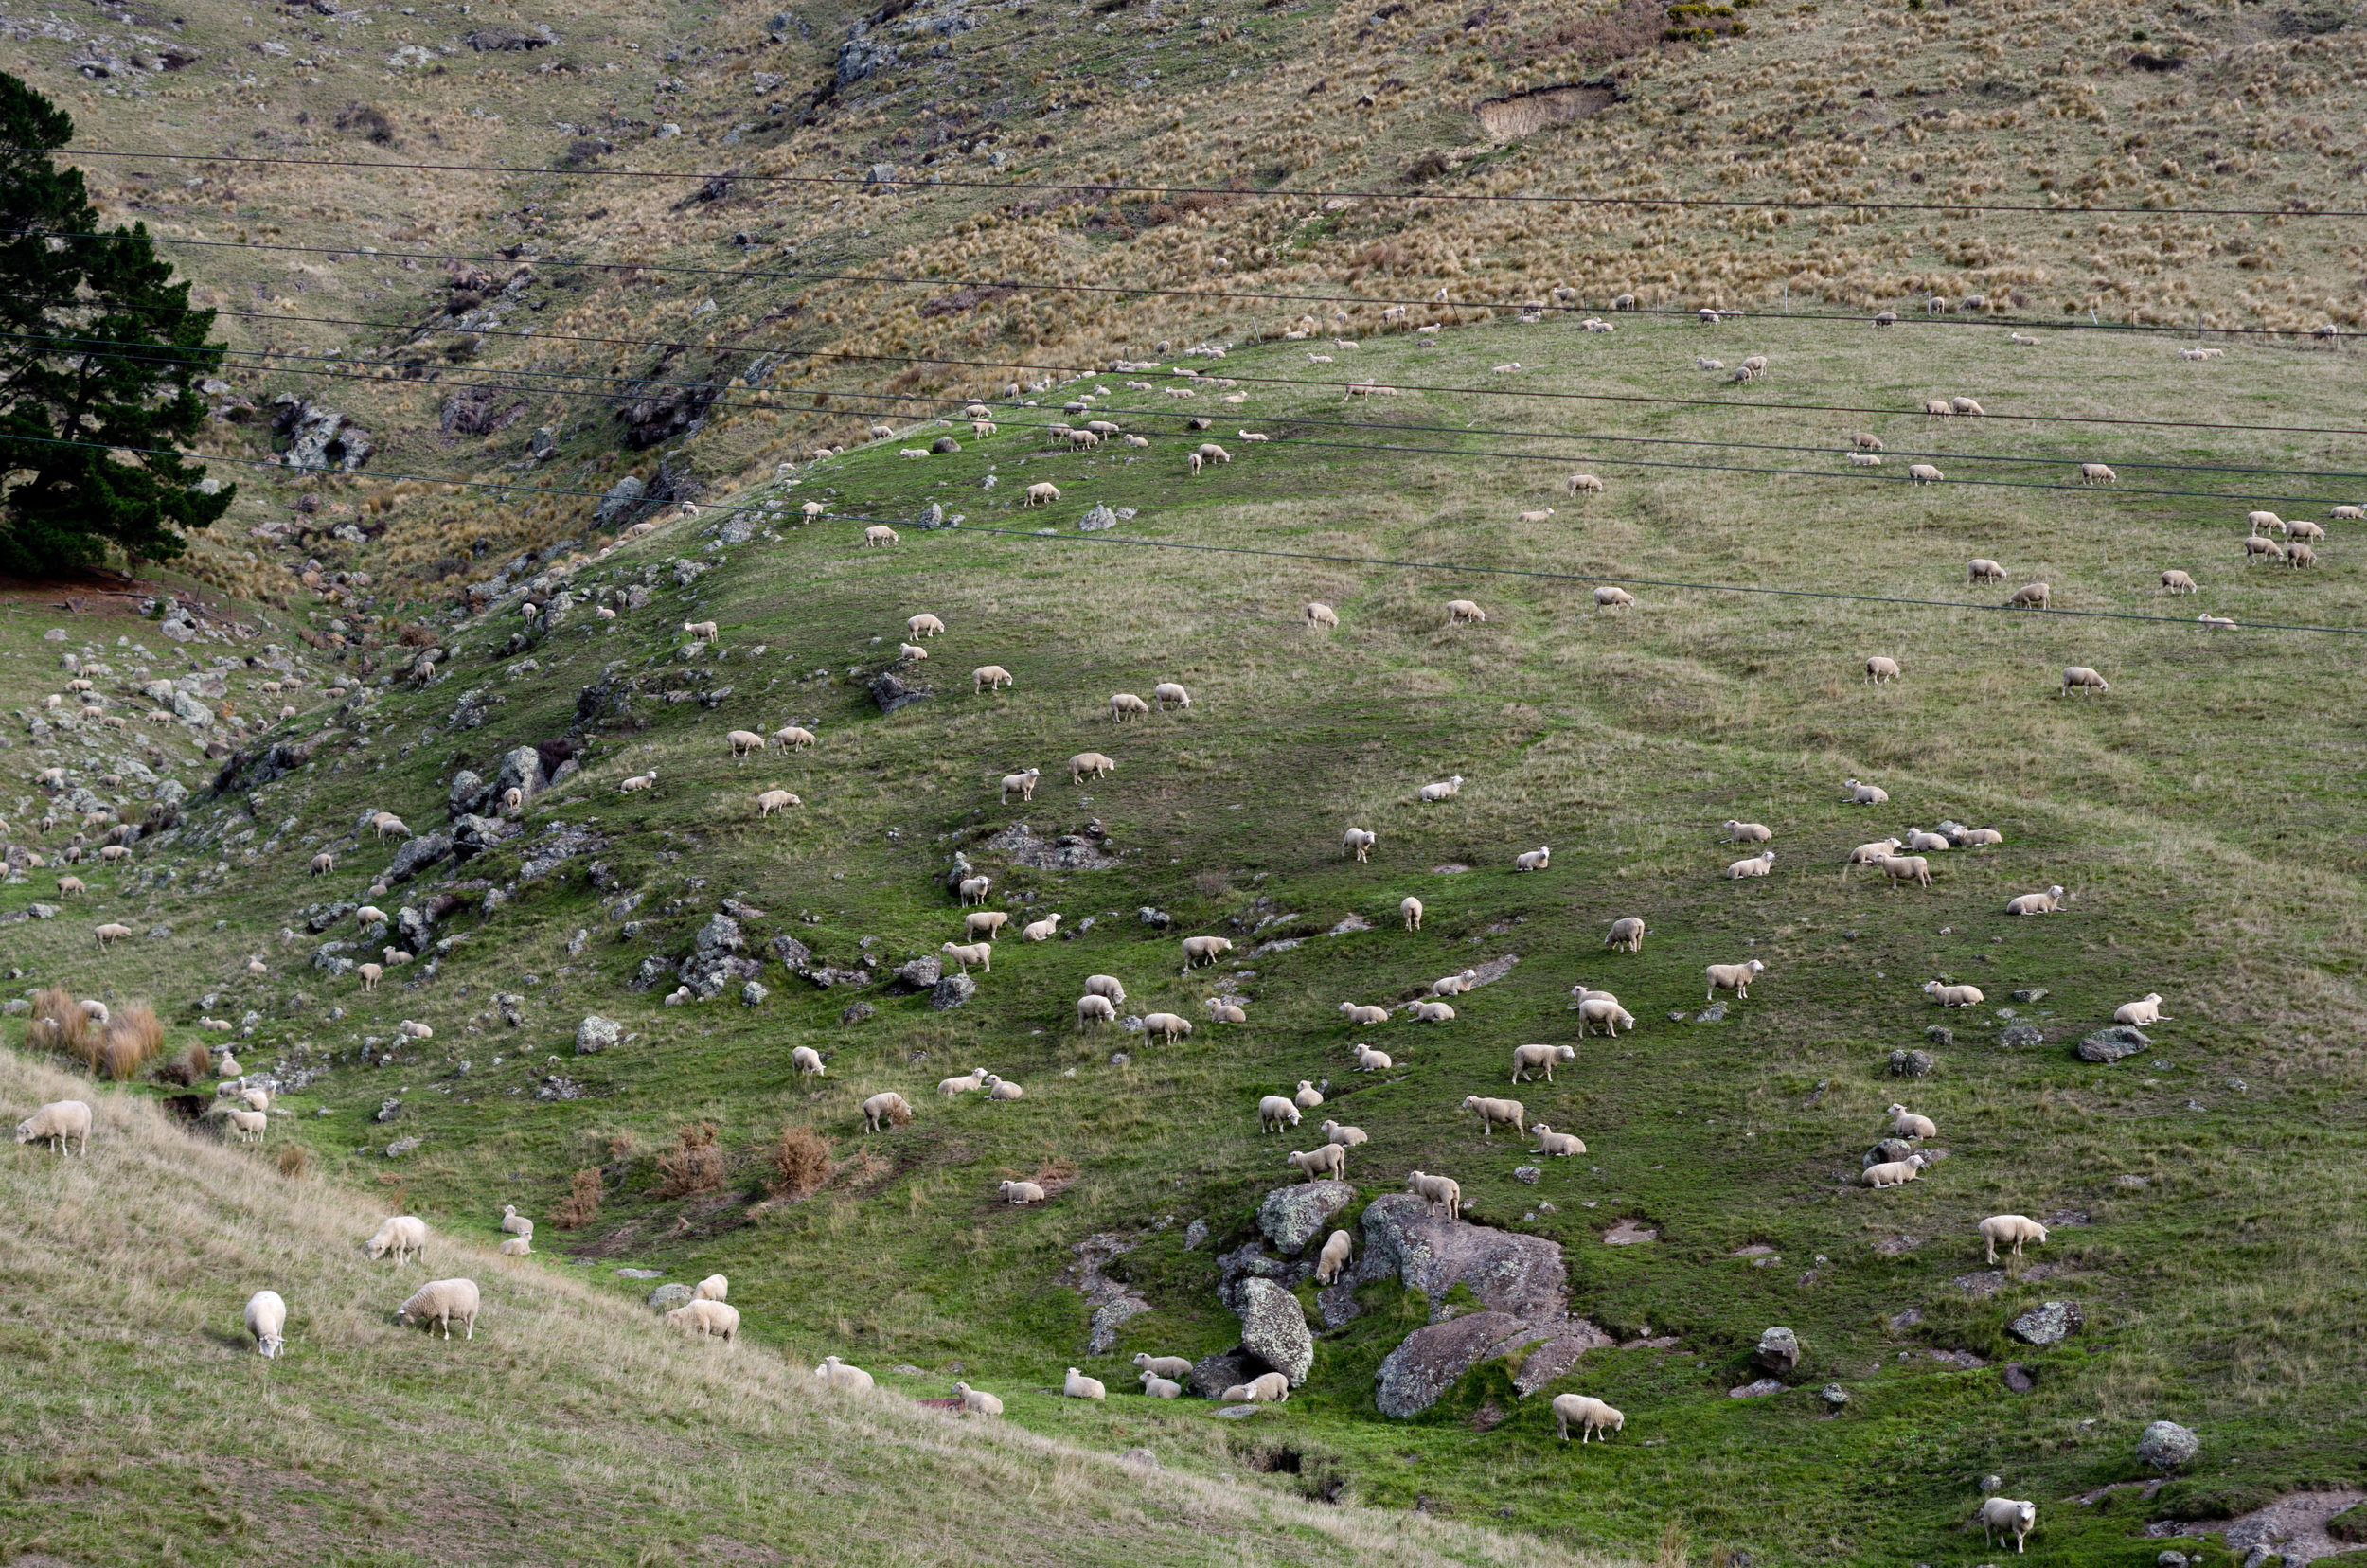 Sheep grazing in a field in New Zealand. Manure from farm animals can lead to high loads of nitrogen and phosphorus in run-off, which has implications on water quality downstream.